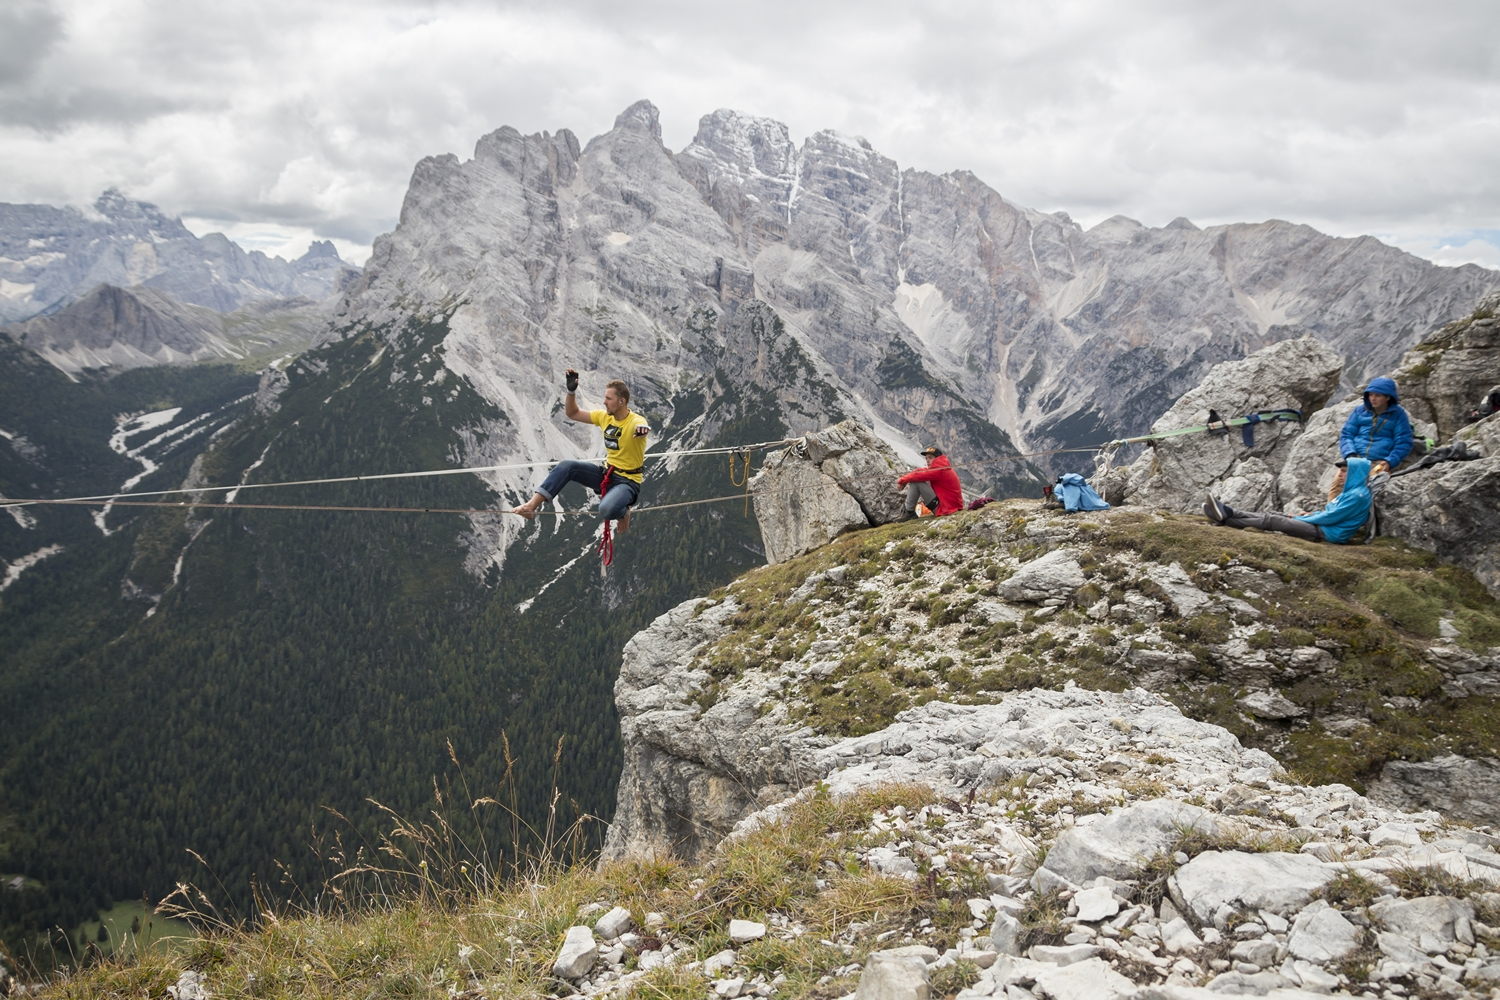 orosz_adam_outdoorinhales_highline_monte_piana_2014_17